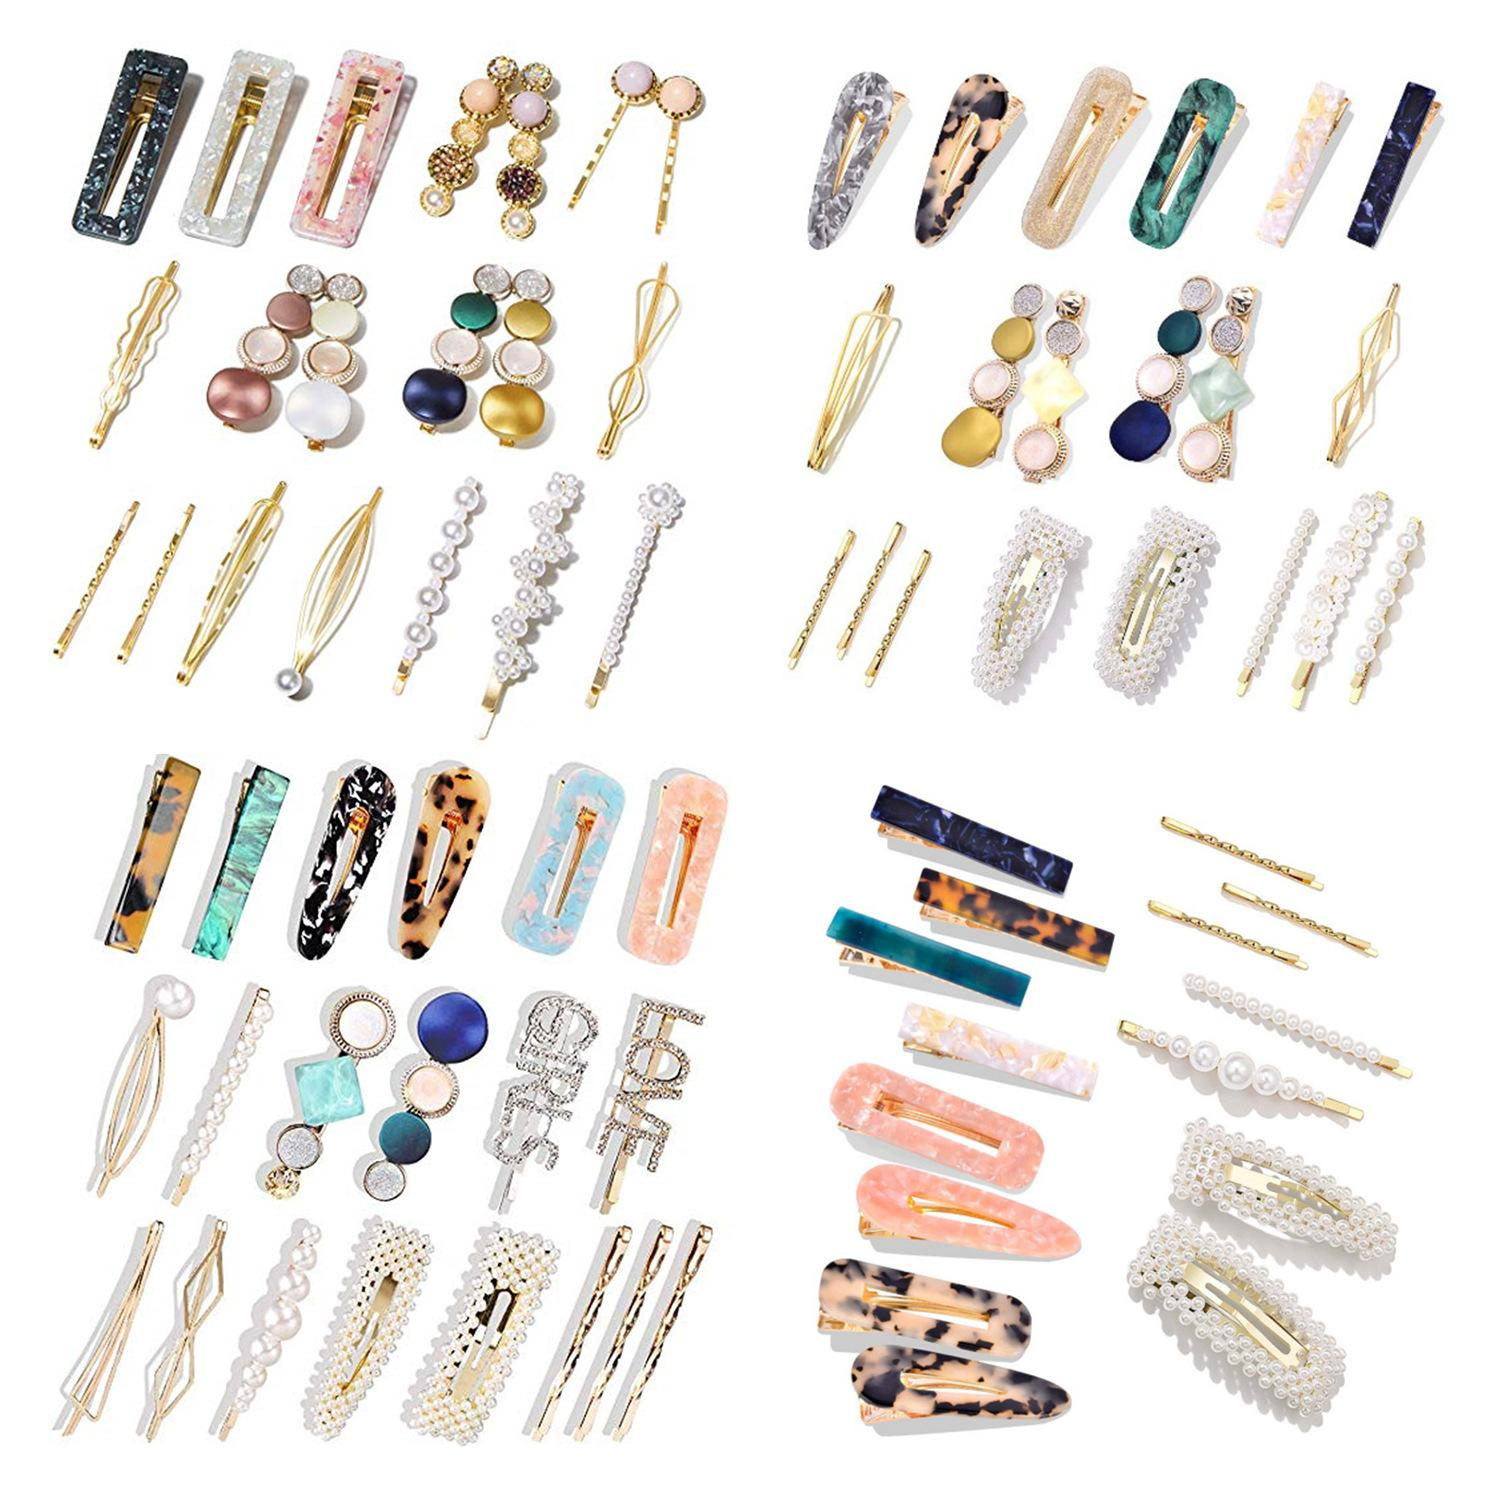 Designer Hair Clips Jewelry Pearls Hairpin Set Stylish Acetate Plate Hair Clips Mix BB Clip Sweet Fashion Barrettes Women Hair Accessories